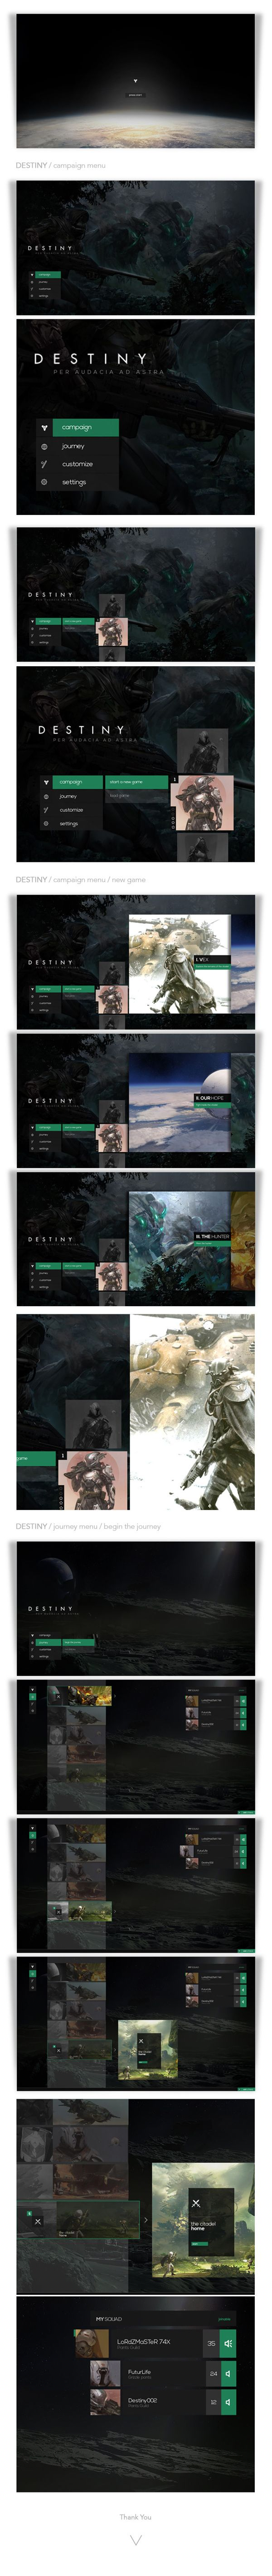 ( GUI ) Destiny / Interface by Lorenzo Carotenuto, via Behance